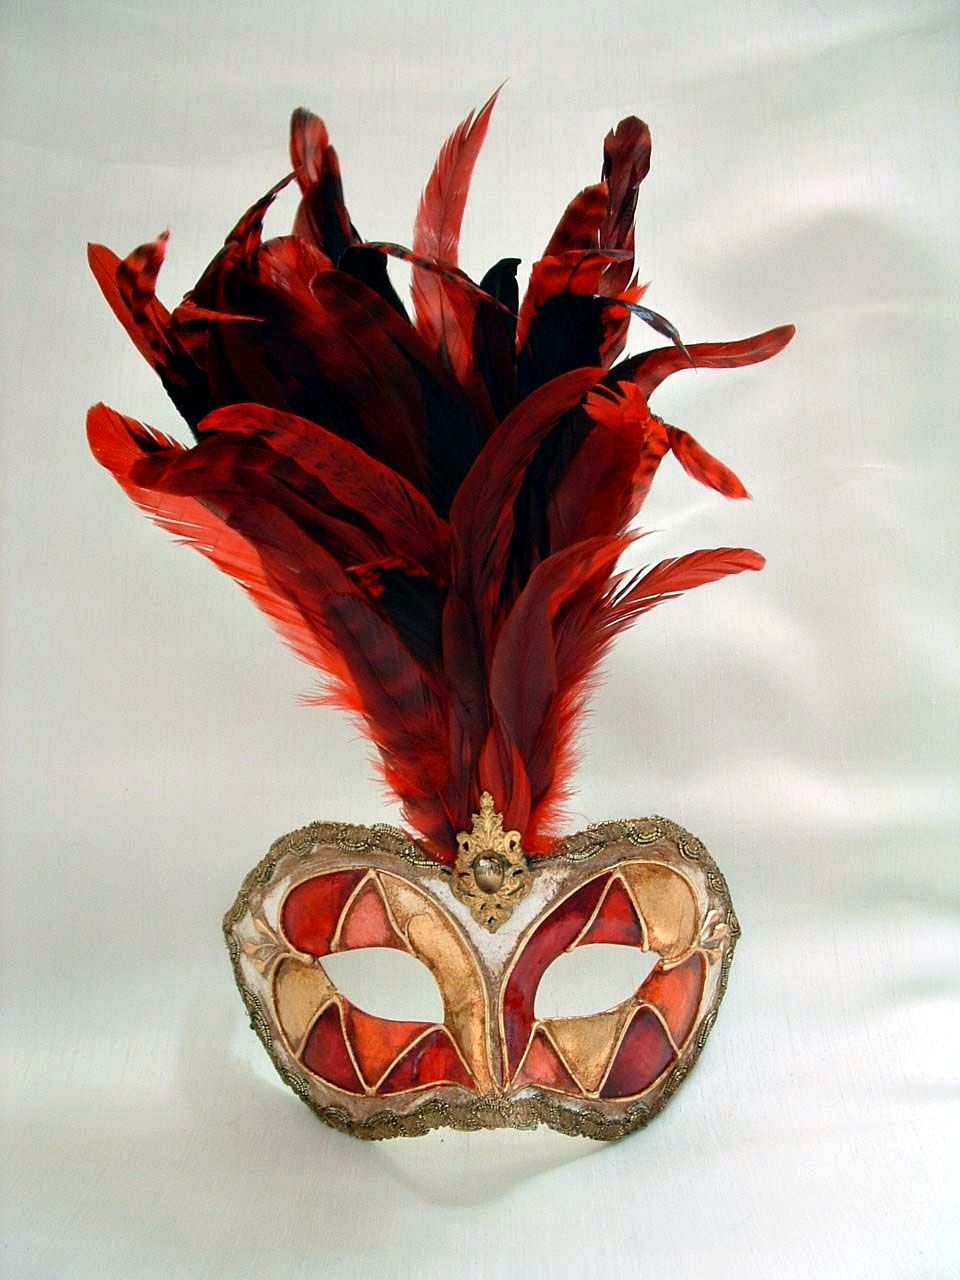 Galletto Arlecchino Red Tiger Feathers Mask